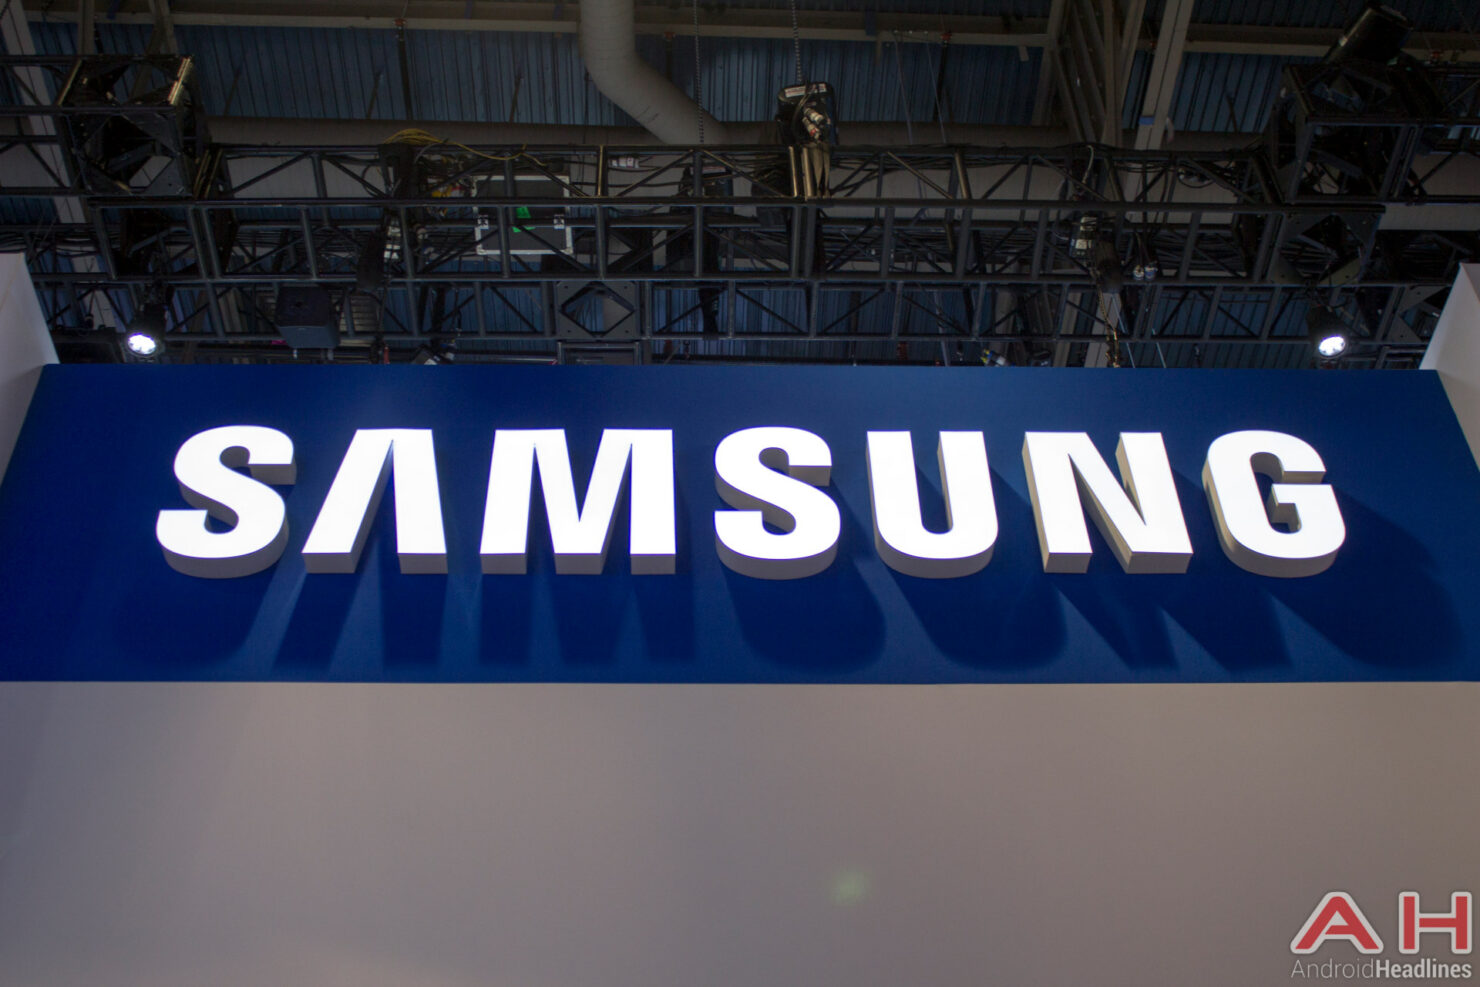 Samsung Won Over 120 Awards at the CES 2017 Trade Show